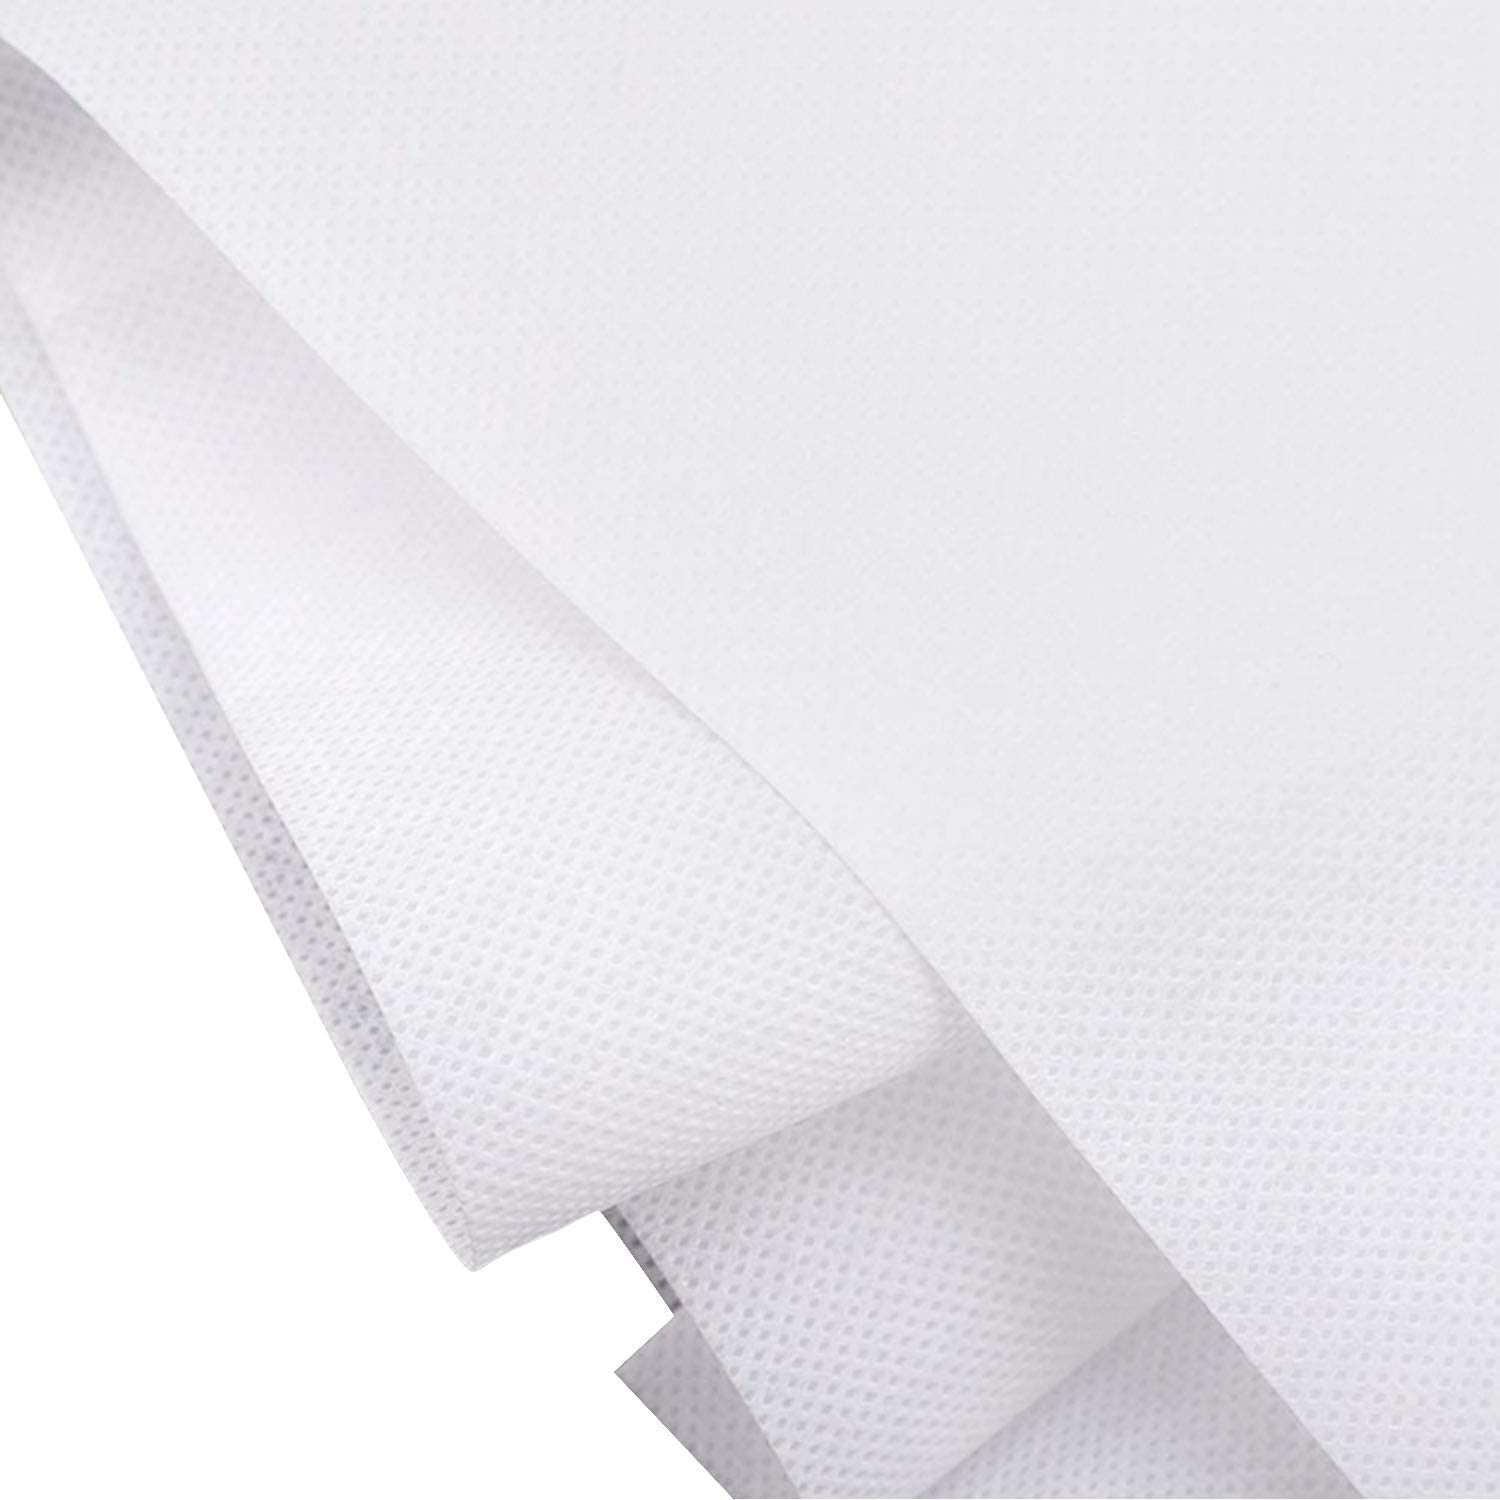 Cloth Disposable Waterproof Non-Woven Fabric, 95% Polypropylene Fabric, Necessities Thickened Disposable Non-Woven Fabric, DIY Handmade Material(20m) White